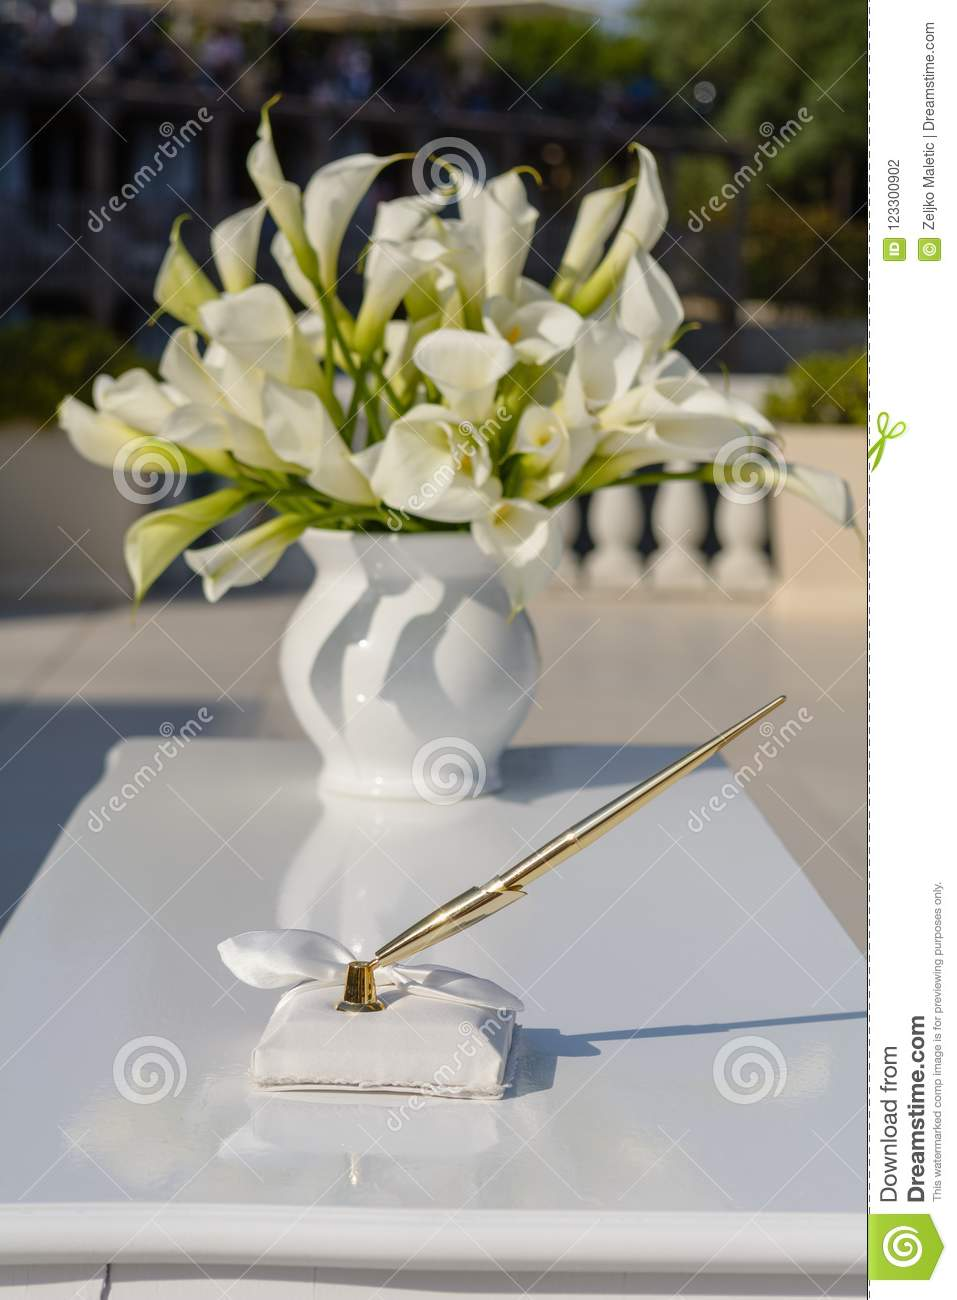 Pen On White Table With Flower Bouquet Stock Photo - Image of holder ...